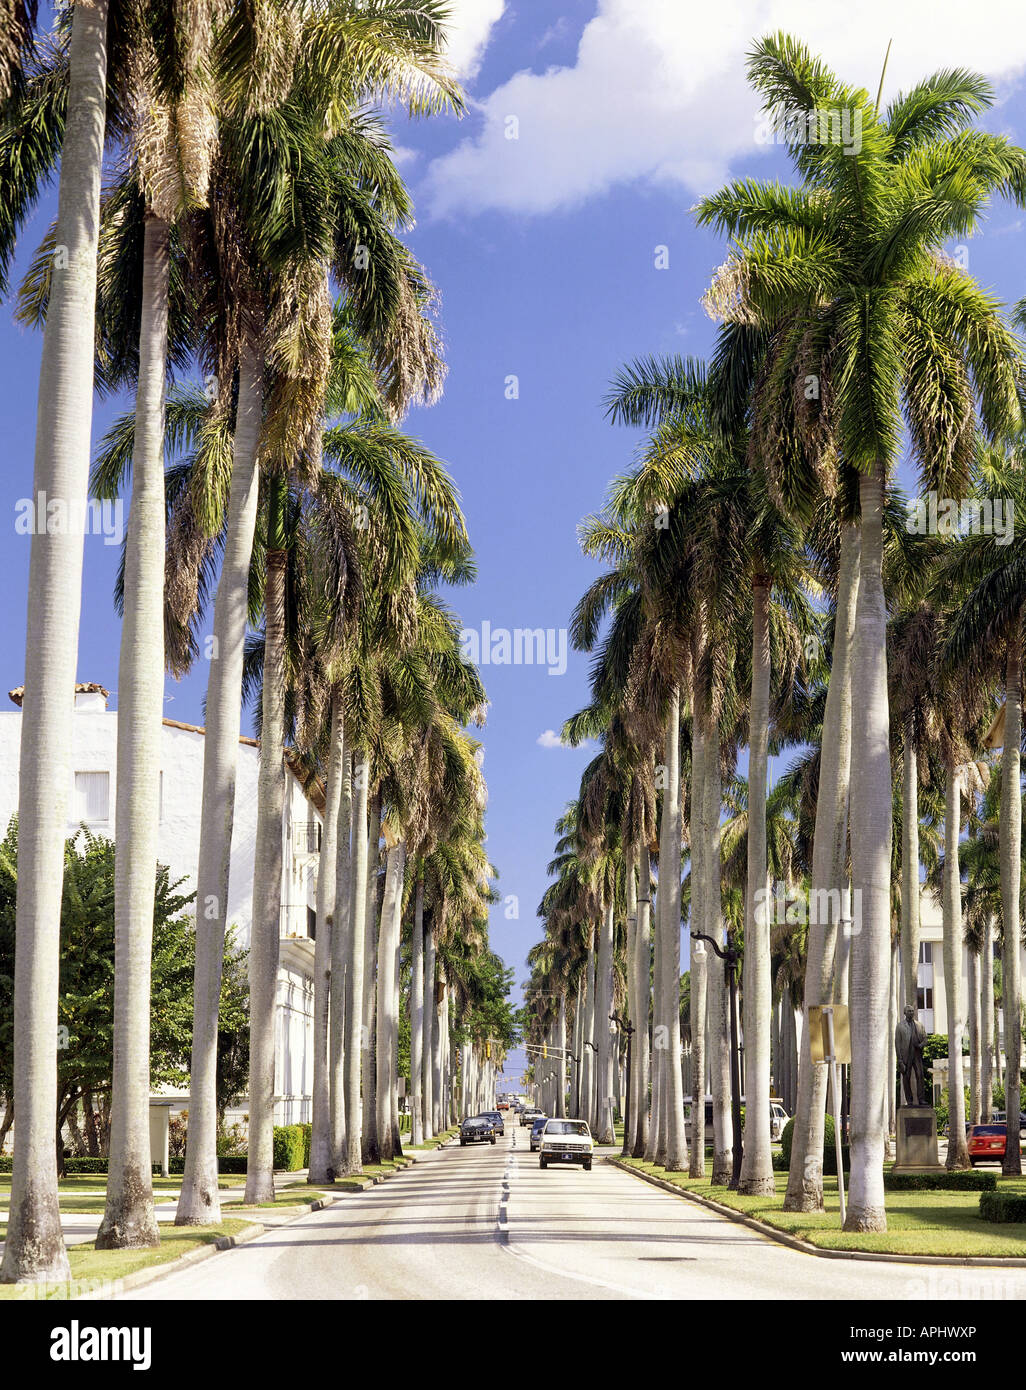 Geography / Travel, USA, Florida, Palm Beach, Holiday